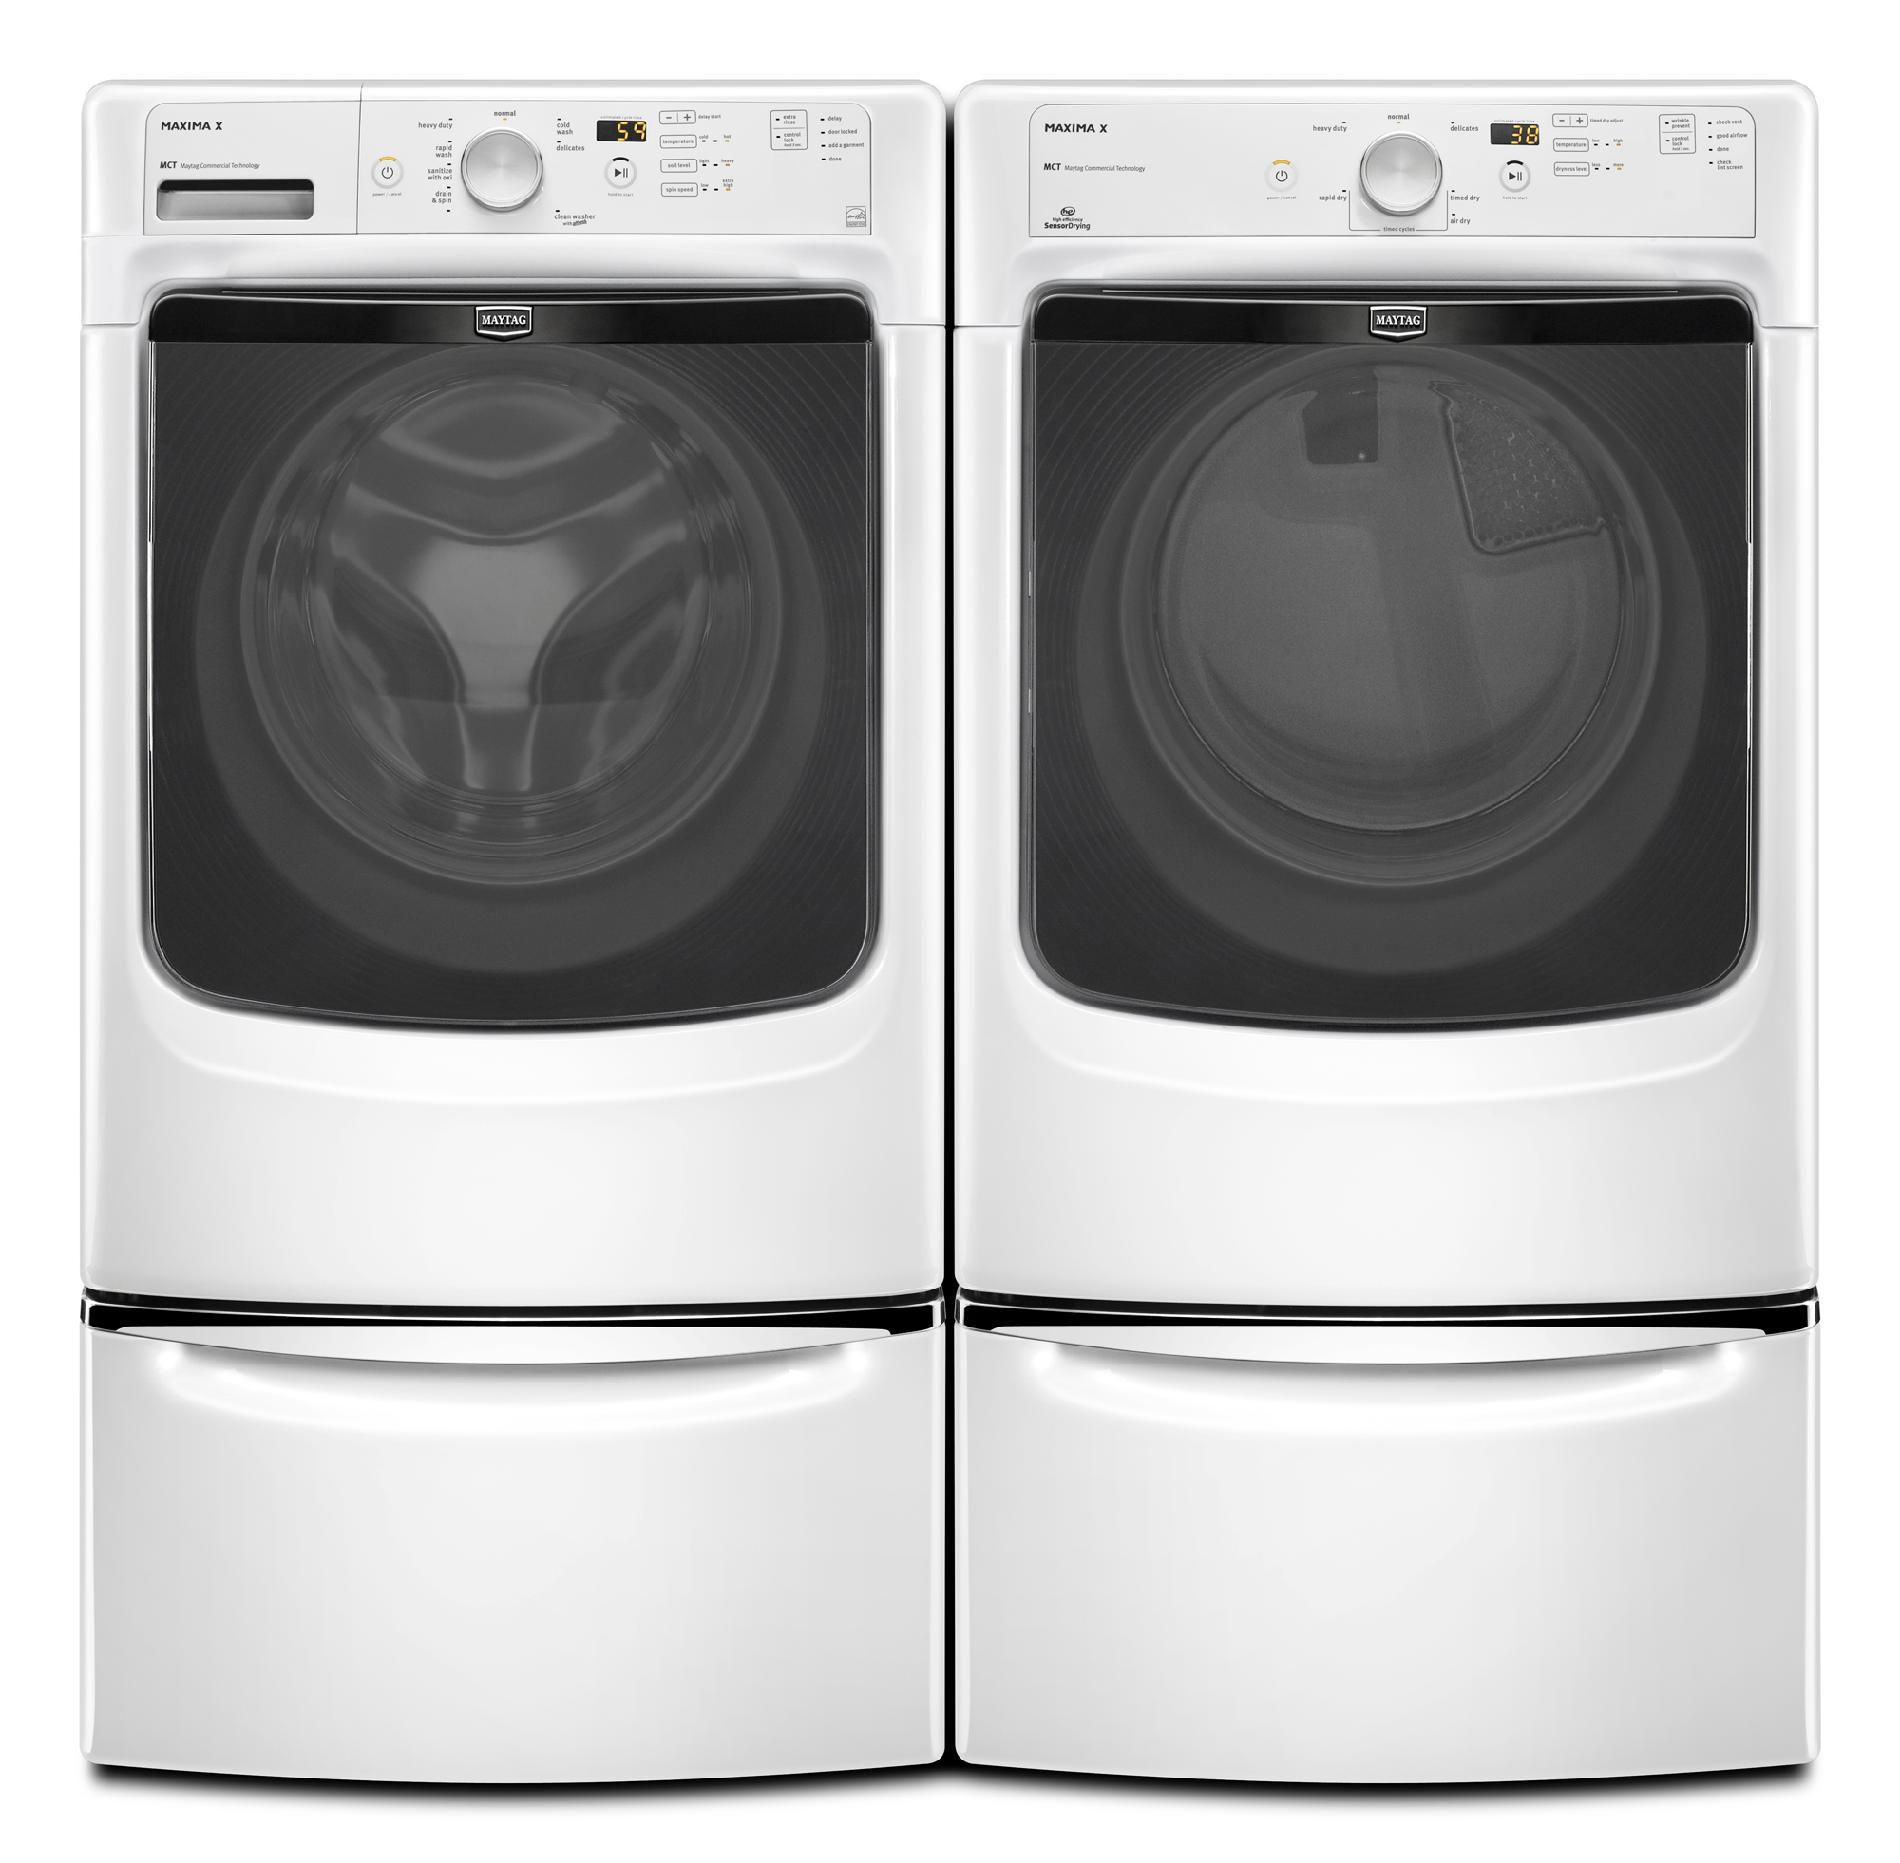 Maytag 4.1 cu. ft. Front-Load Washer - White